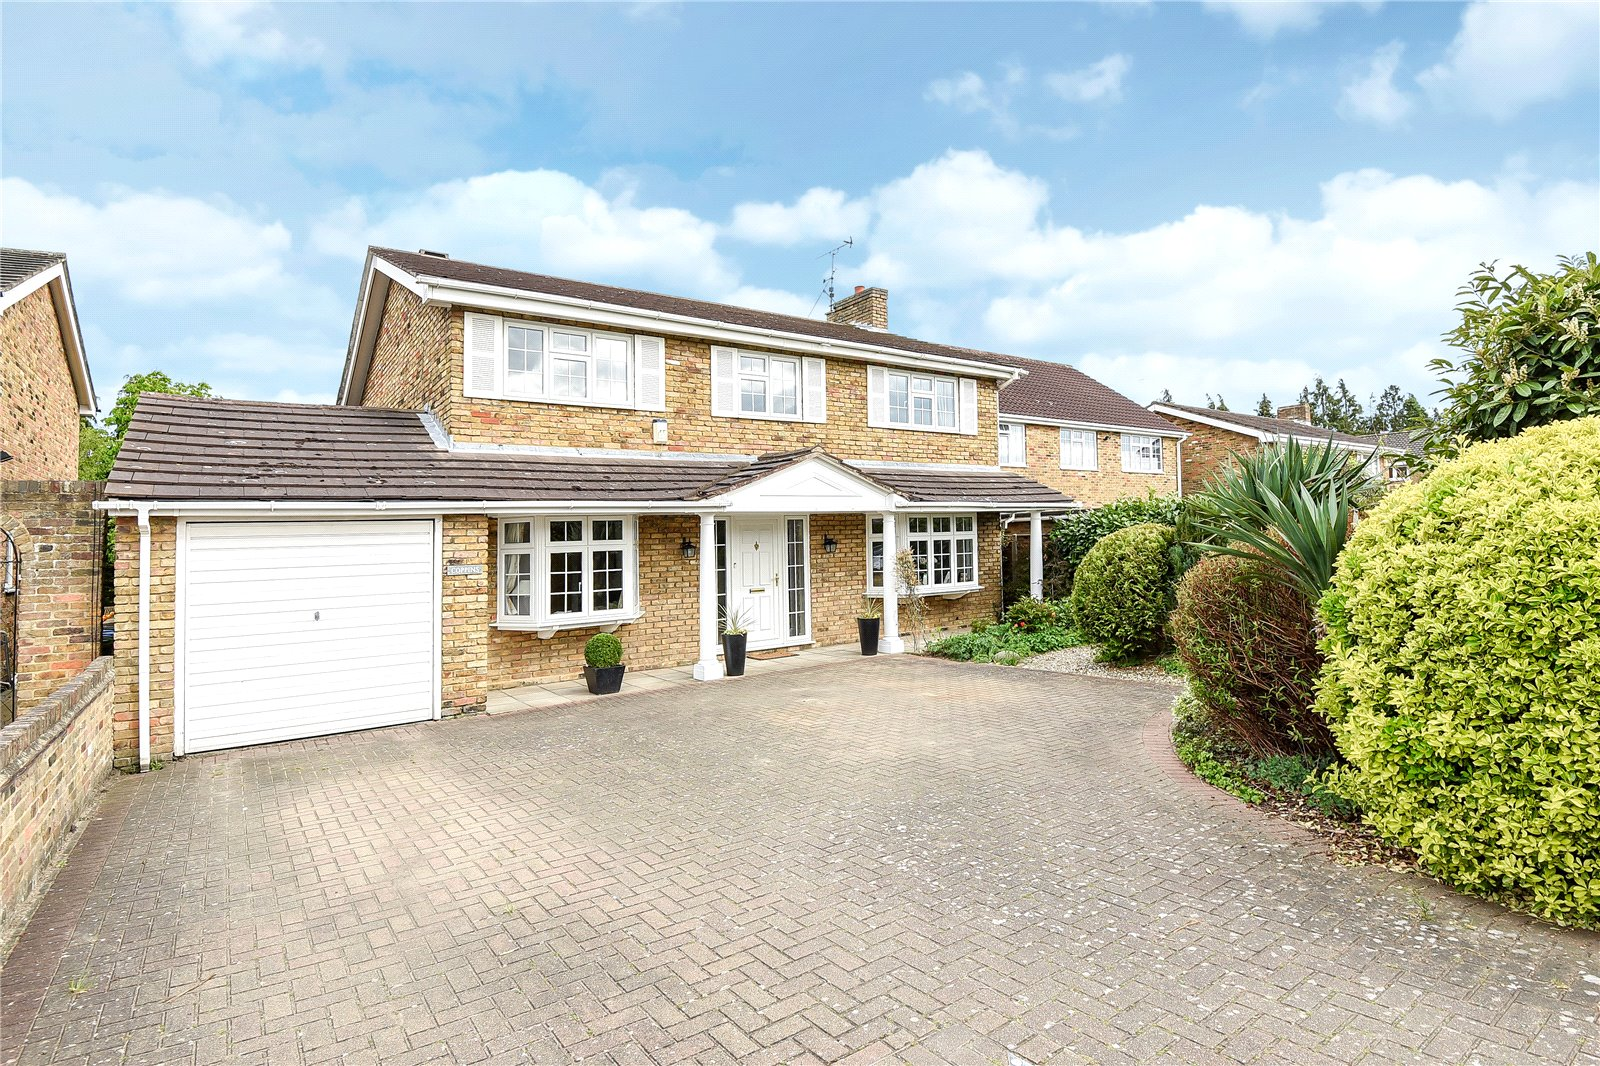 4 Bedrooms Detached House for sale in Cannon Lane, Maidenhead, Berkshire, SL6